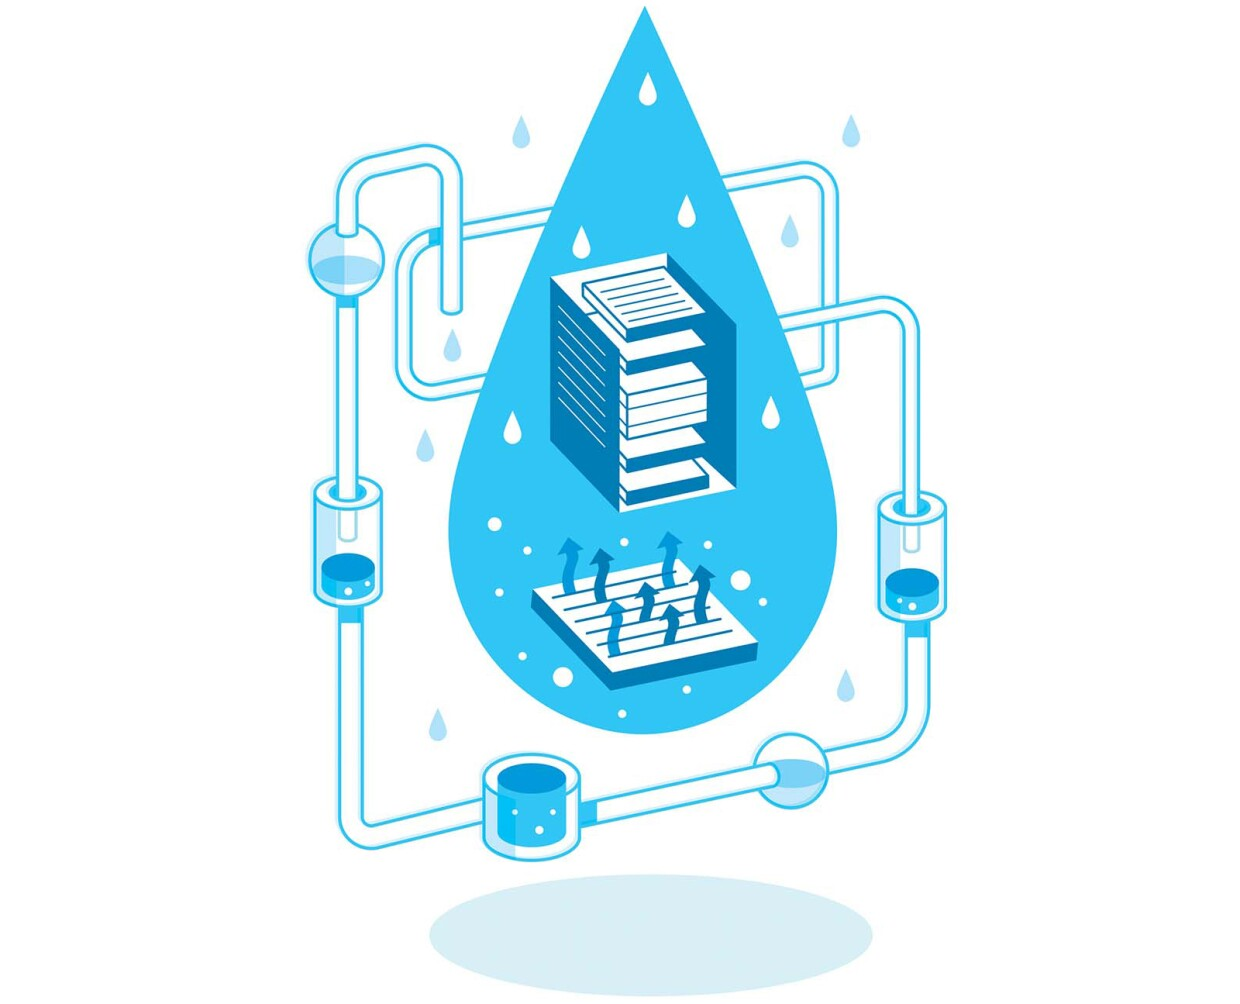 An illustration of the water cooling at AWS data centers